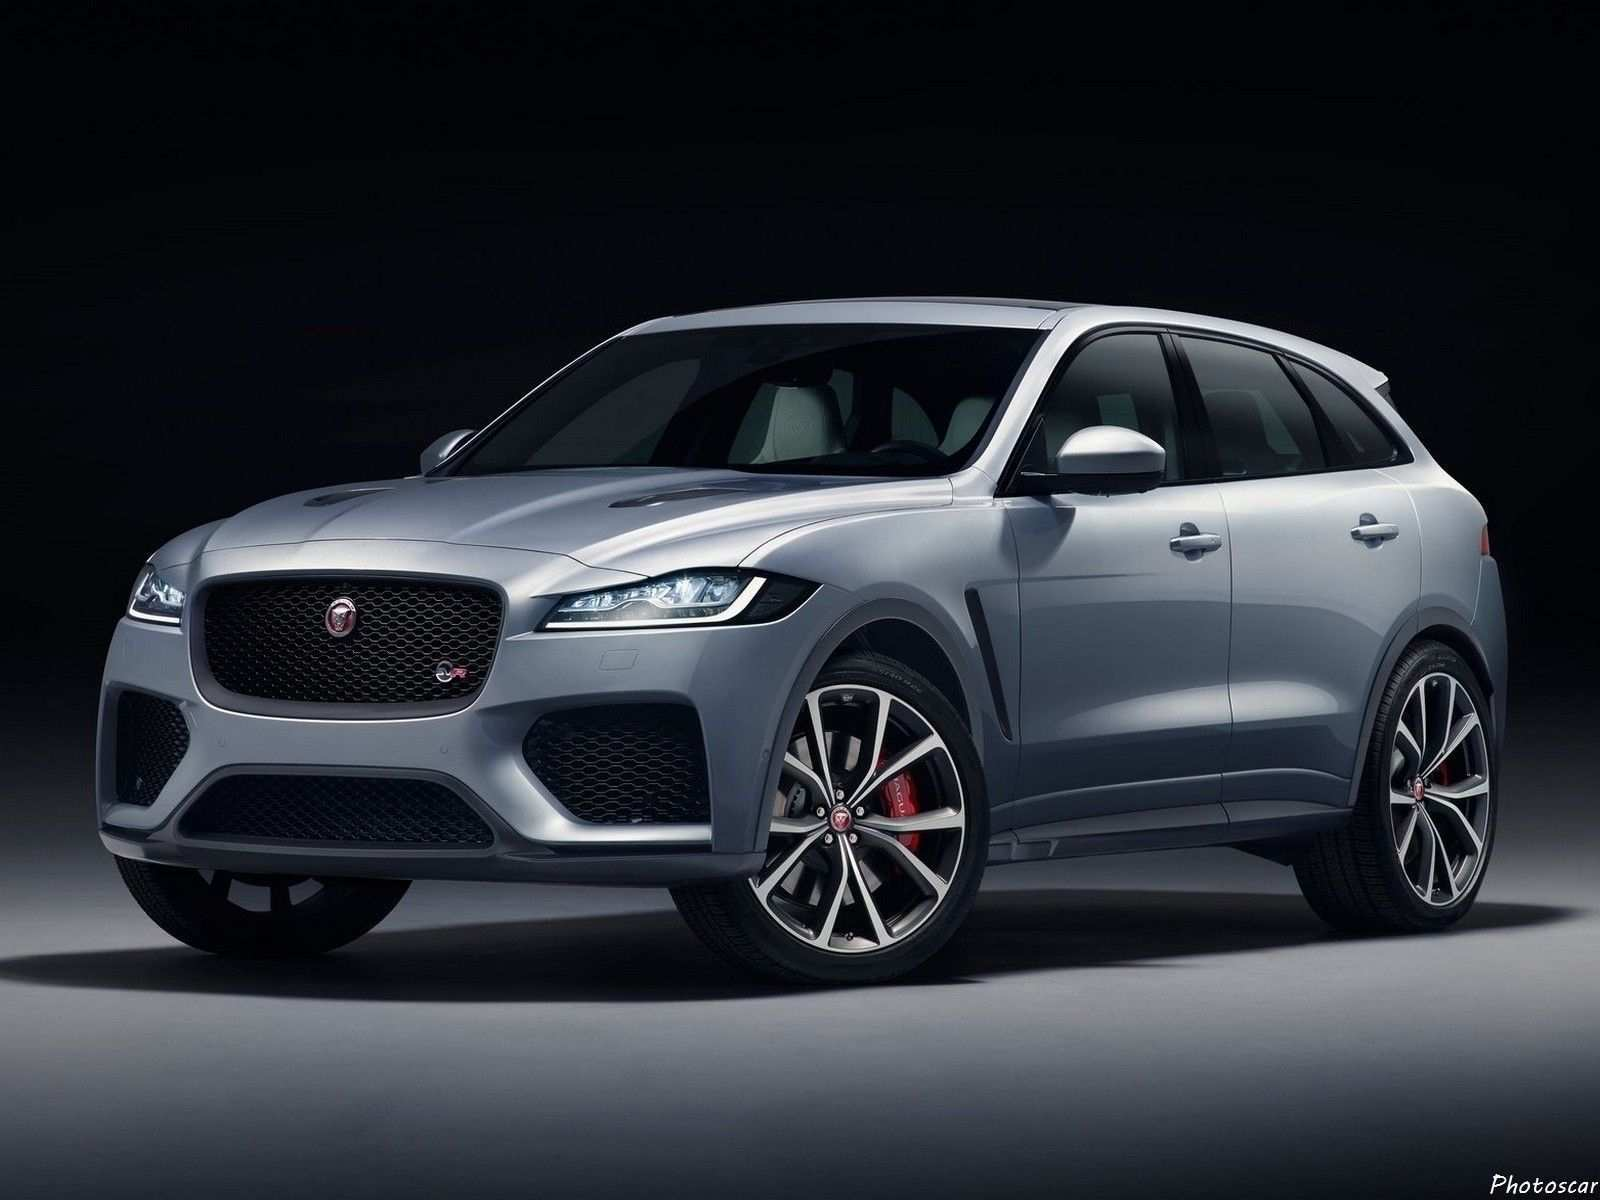 34 The 2020 Jaguar Xq Crossover Configurations